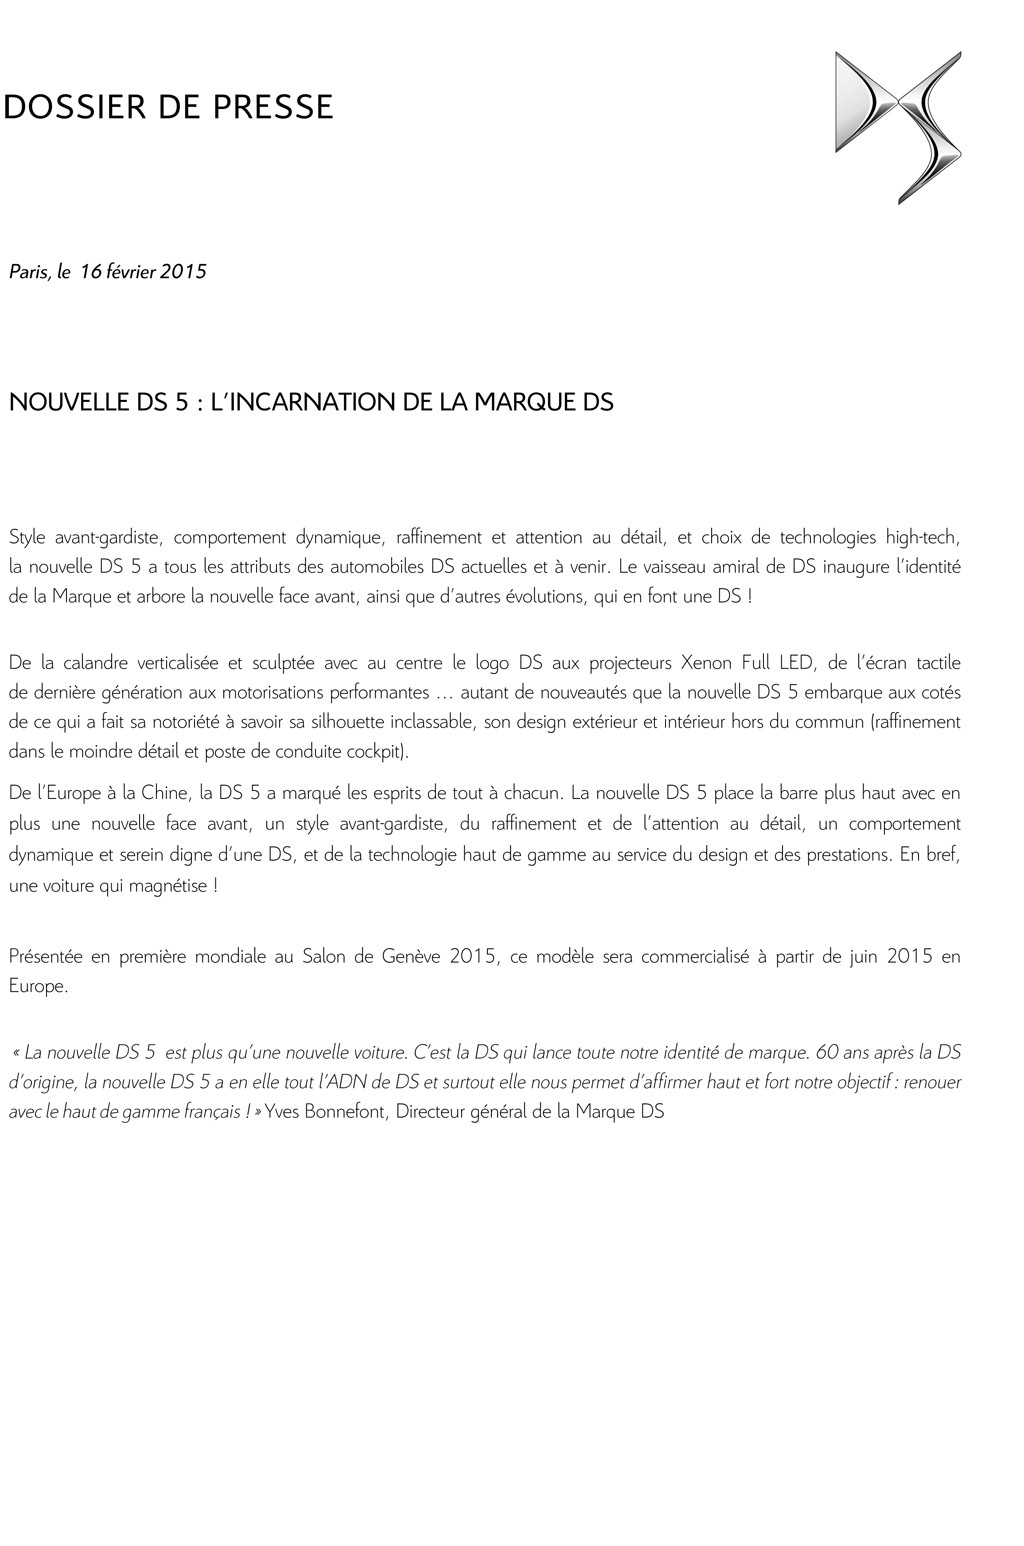 [SUJET OFFICIEL] DS 5 restylée (photos officielles p.16) - Page 10 Dp_ds_10